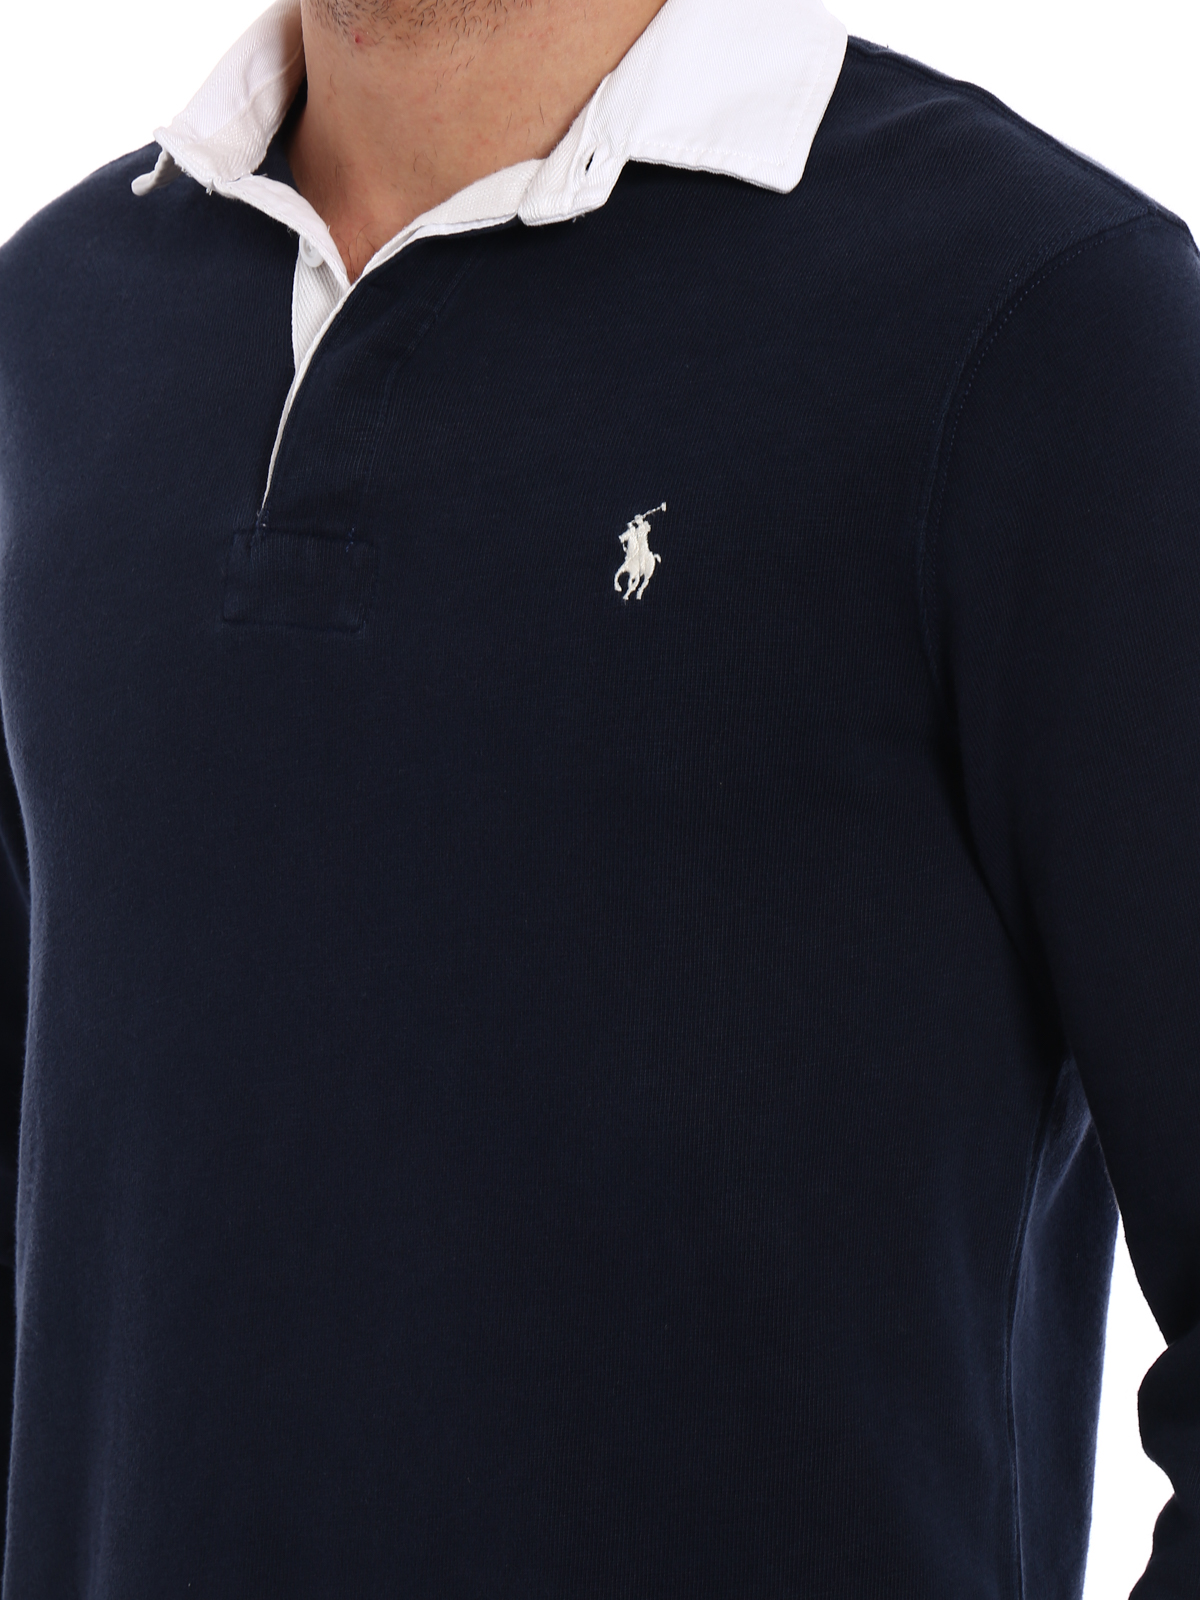 Polos 710690874001 Polo Ralph Iconic Lauren Rugby 7yYgIbf6v